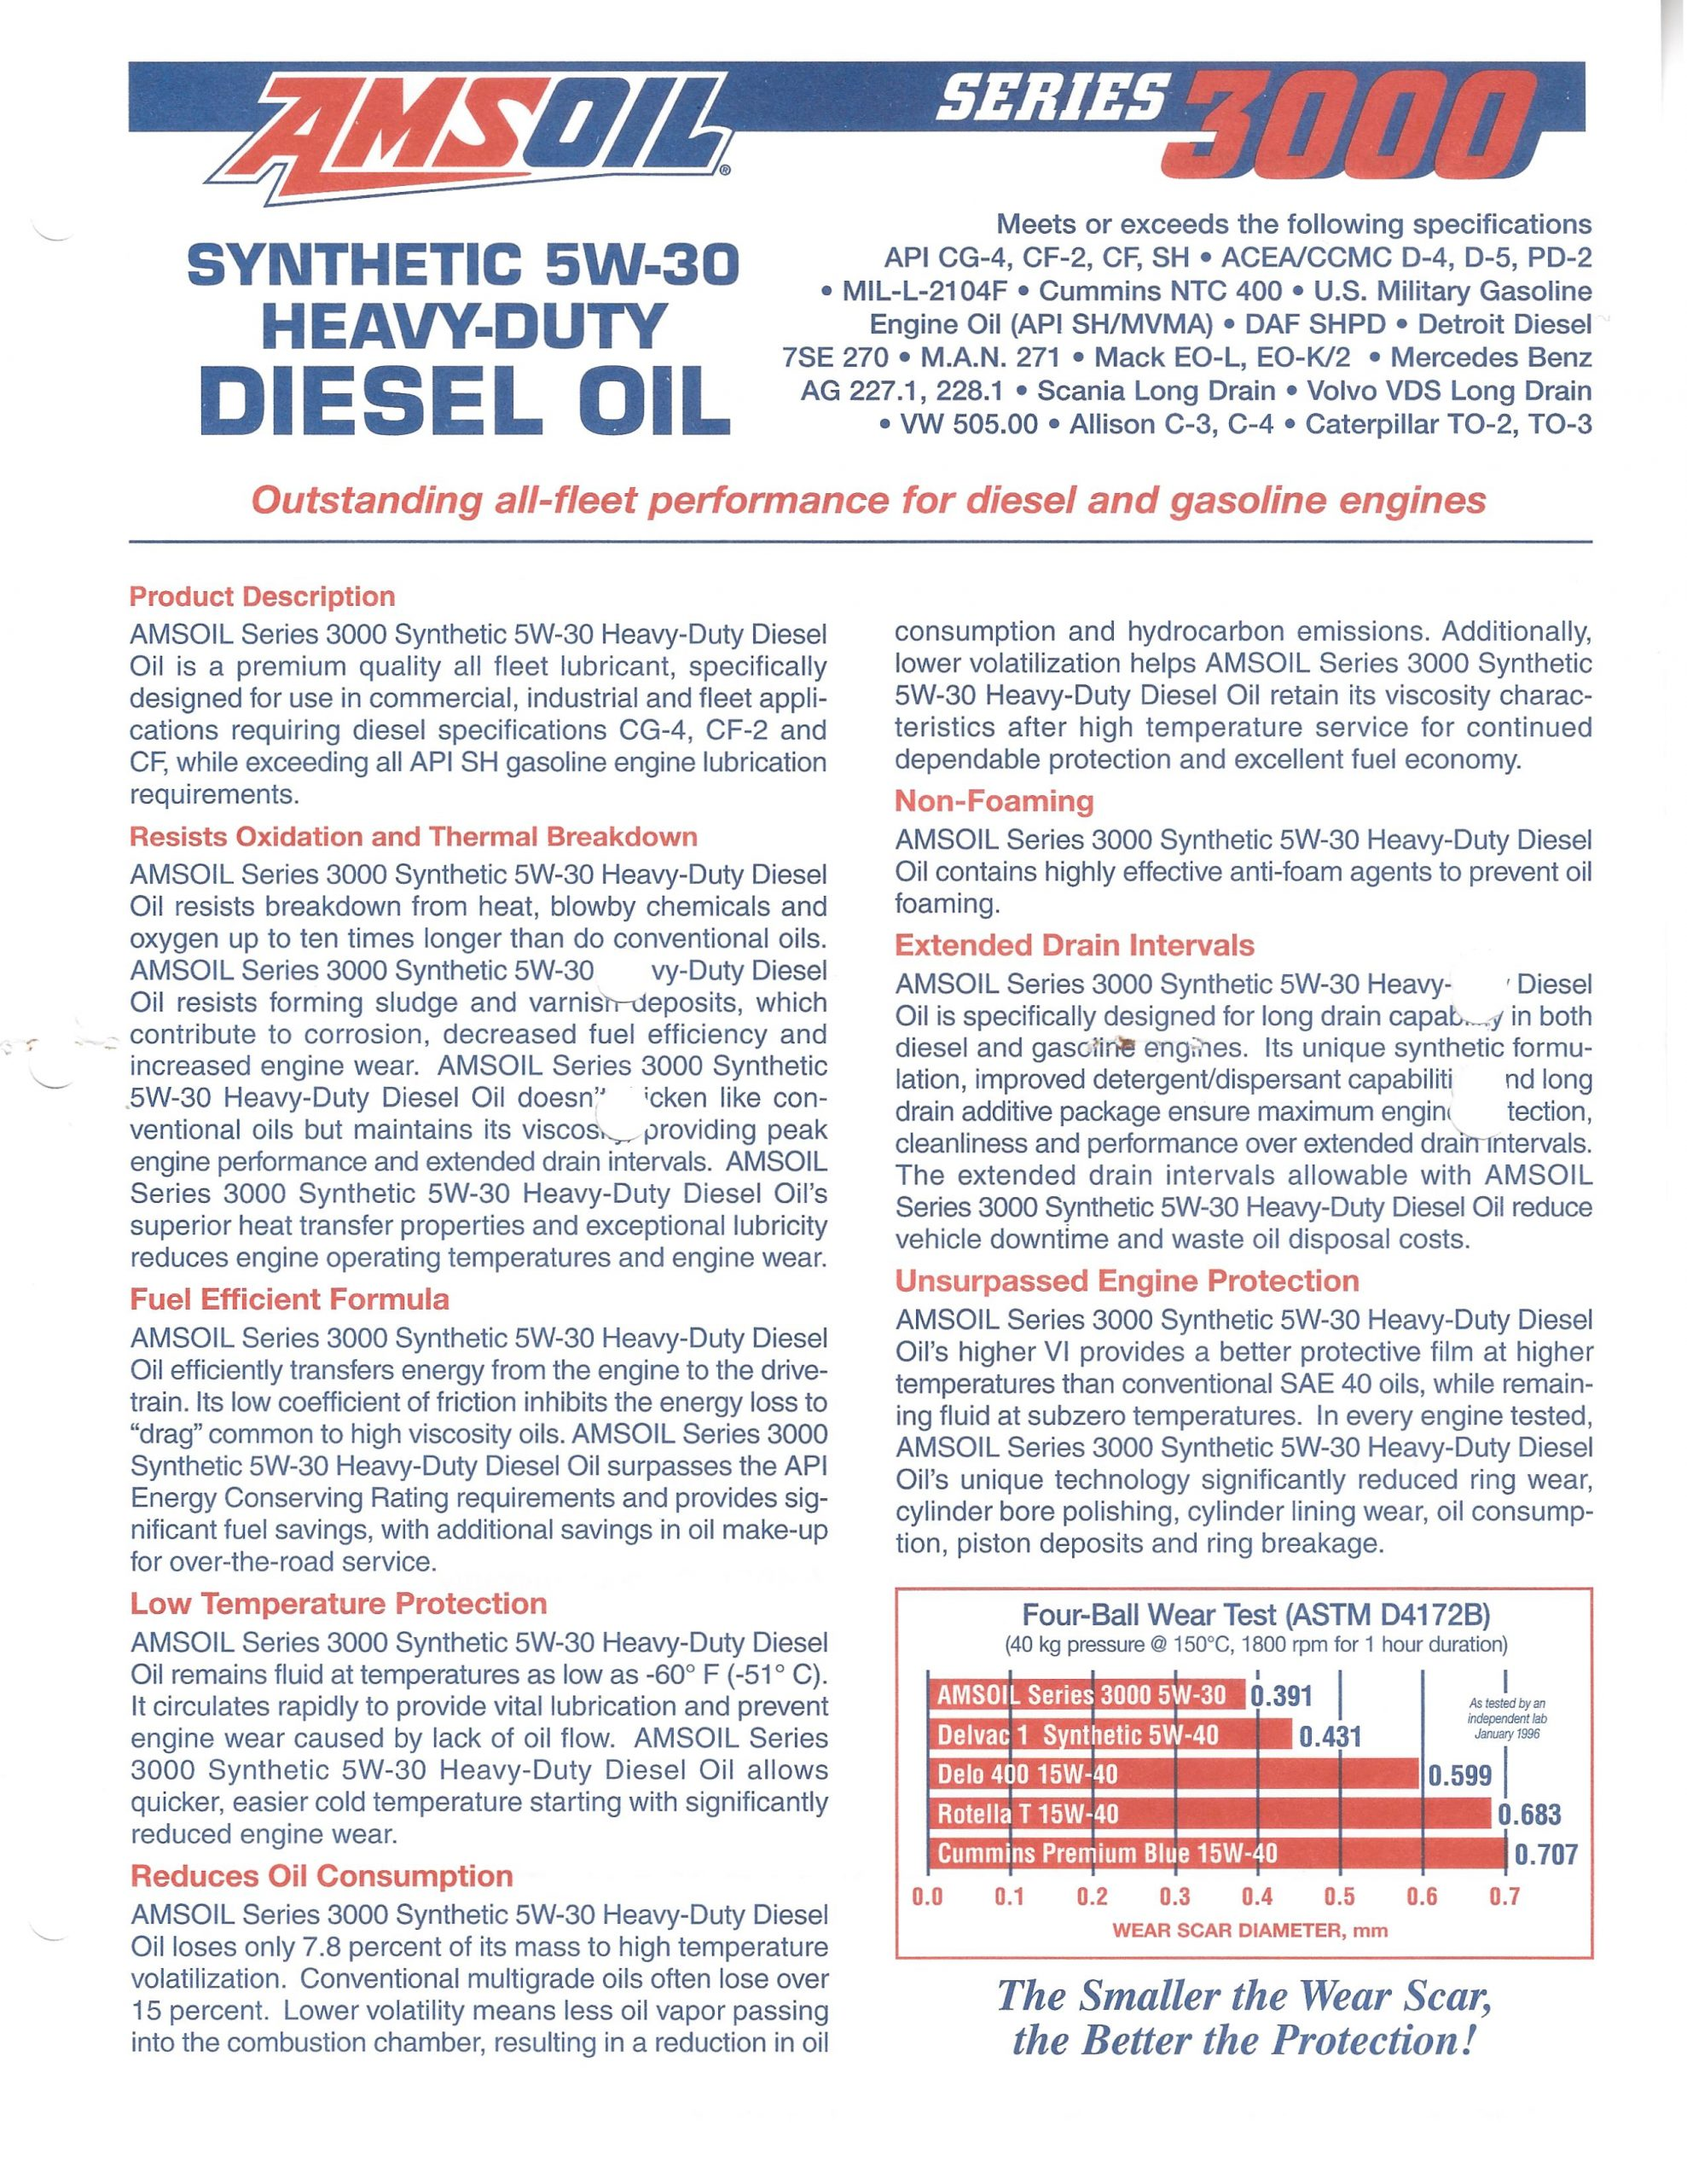 Front page of AMSOIL G1301 Data Sheet for Series 3000 Synthetic 5w30 Heavy Duty Diesel Oil dated 08/96